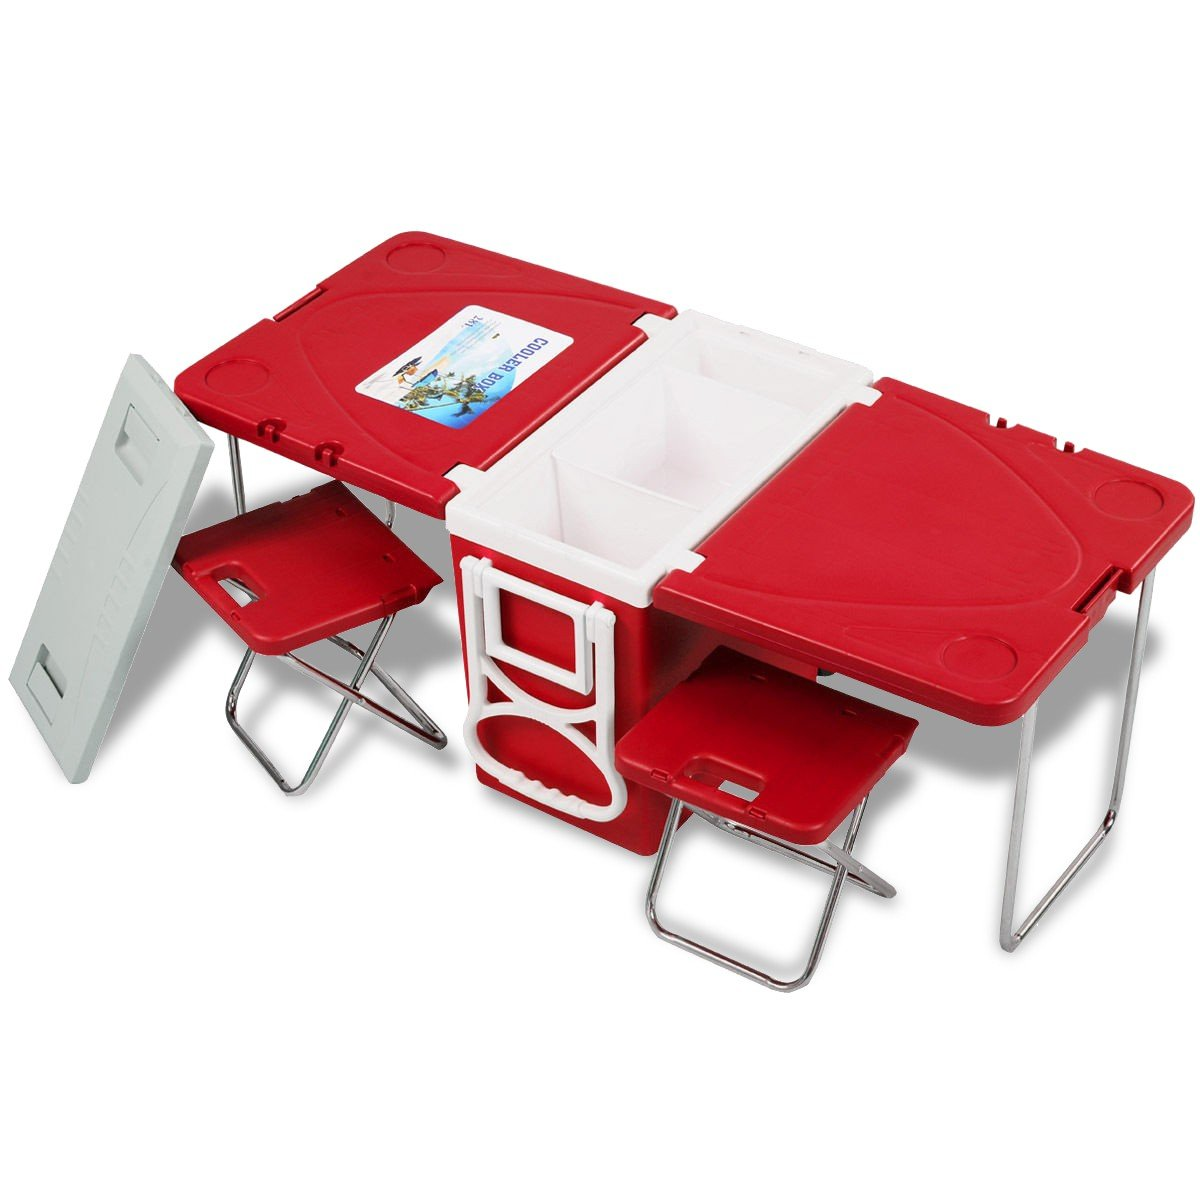 CHOOSEandBUY Multi Functional Rolling Picnic Cooler w/Table & 2 Chairs - RED